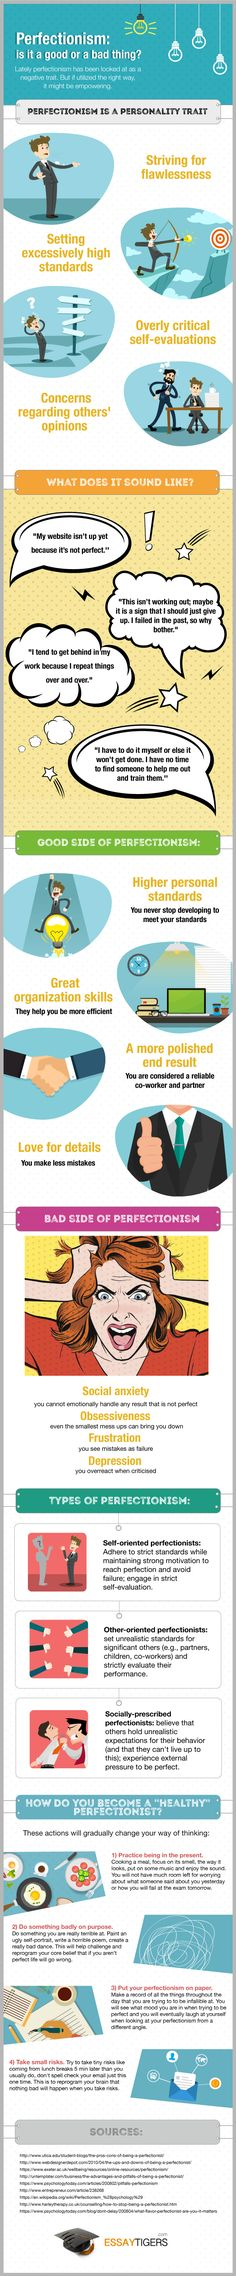 Perfectionism: Is It a Good or a Bad Thing? #infographic #Health